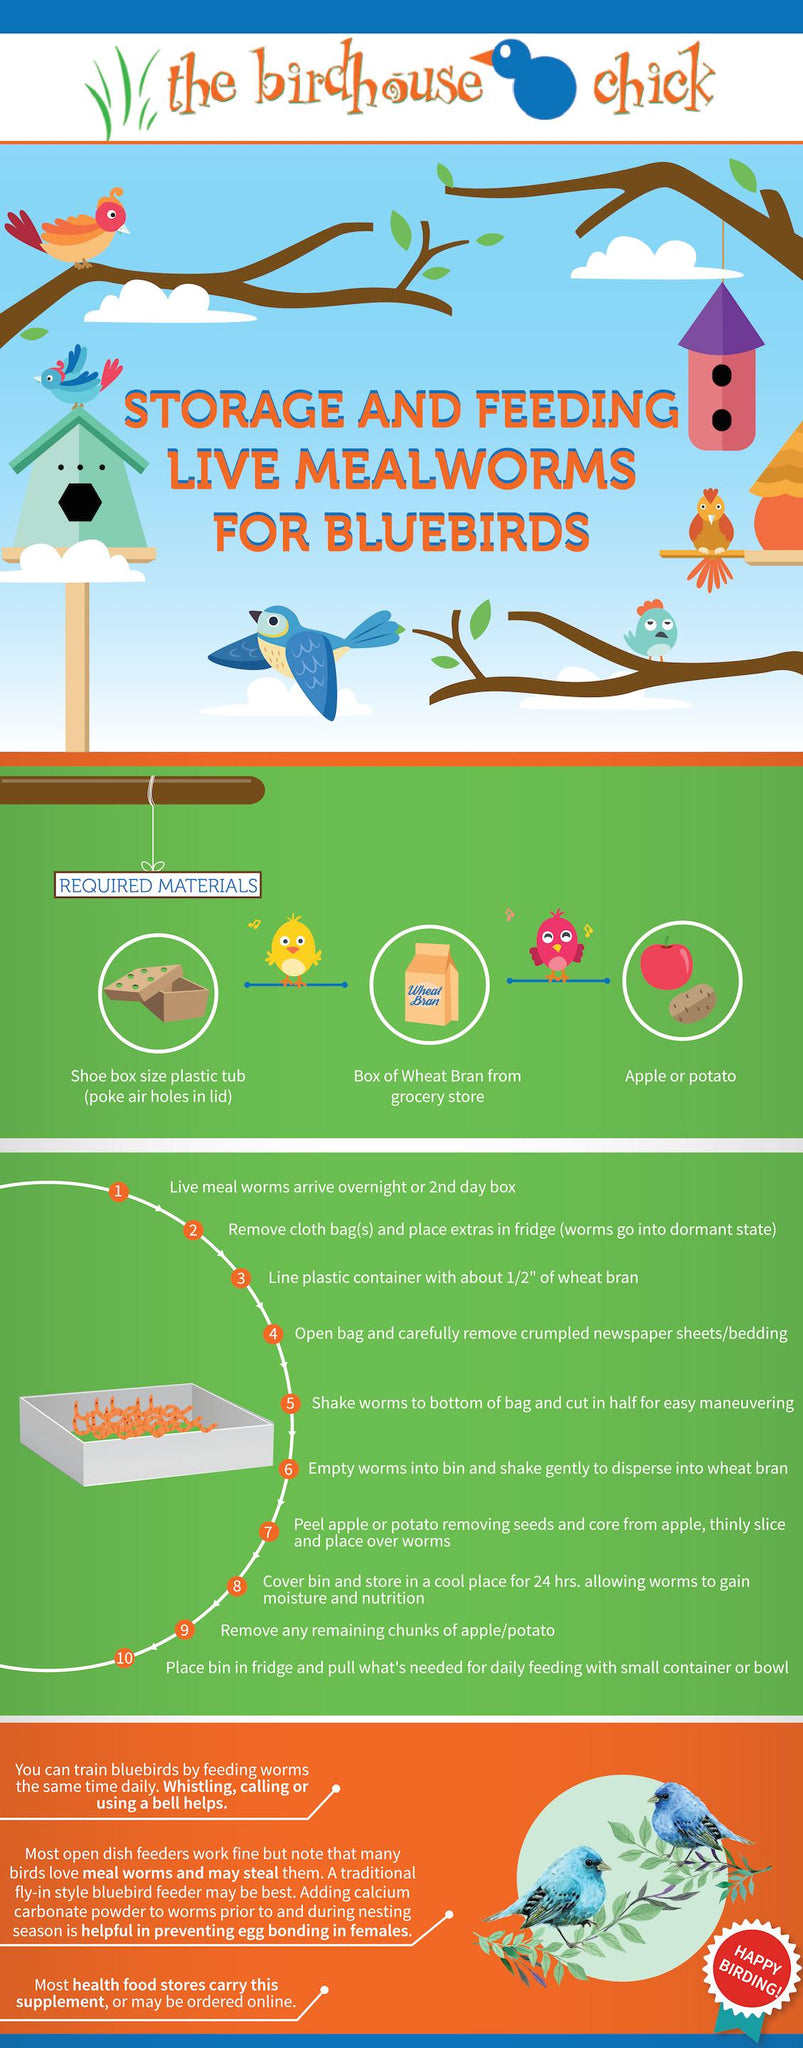 Handling and Storing Live Mealworms for Bluebirds